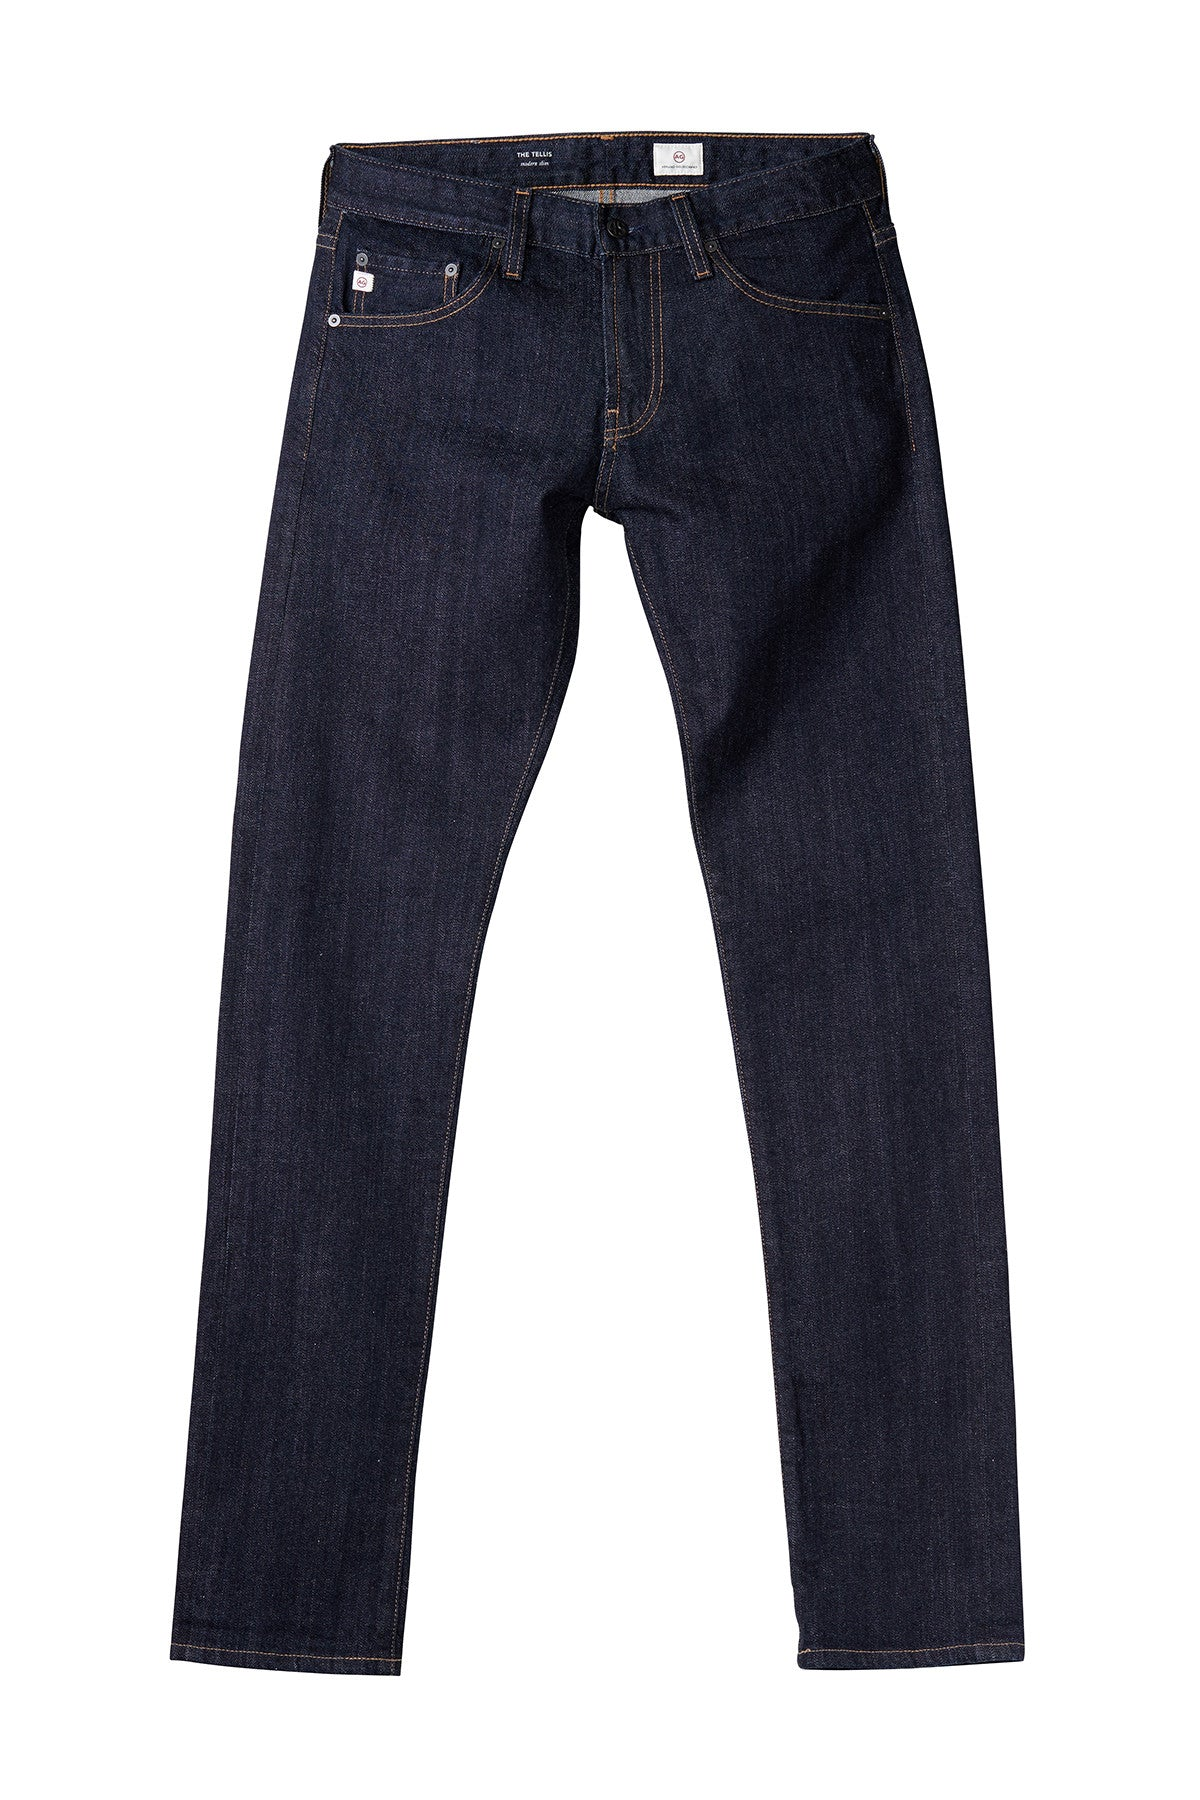 Cheap And Nice Tellis Slim-fit Distressed Stretch-denim Jeans AG - Adriano Goldschmied Cheap Sale Largest Supplier Sale Eastbay dO1J2